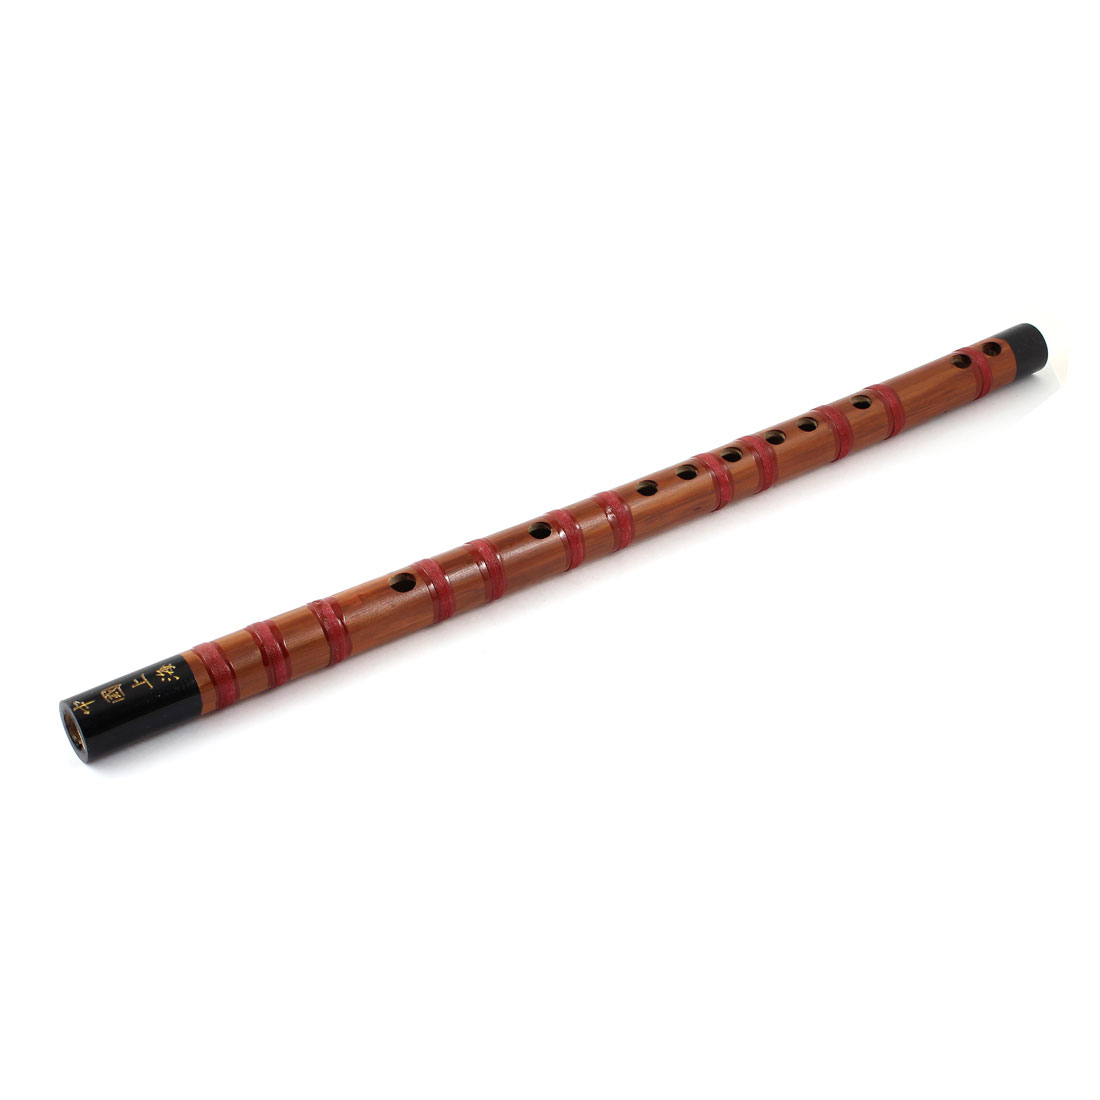 43cm Long Alto G 12 Holes Chinese Bamboo Flute Instrument